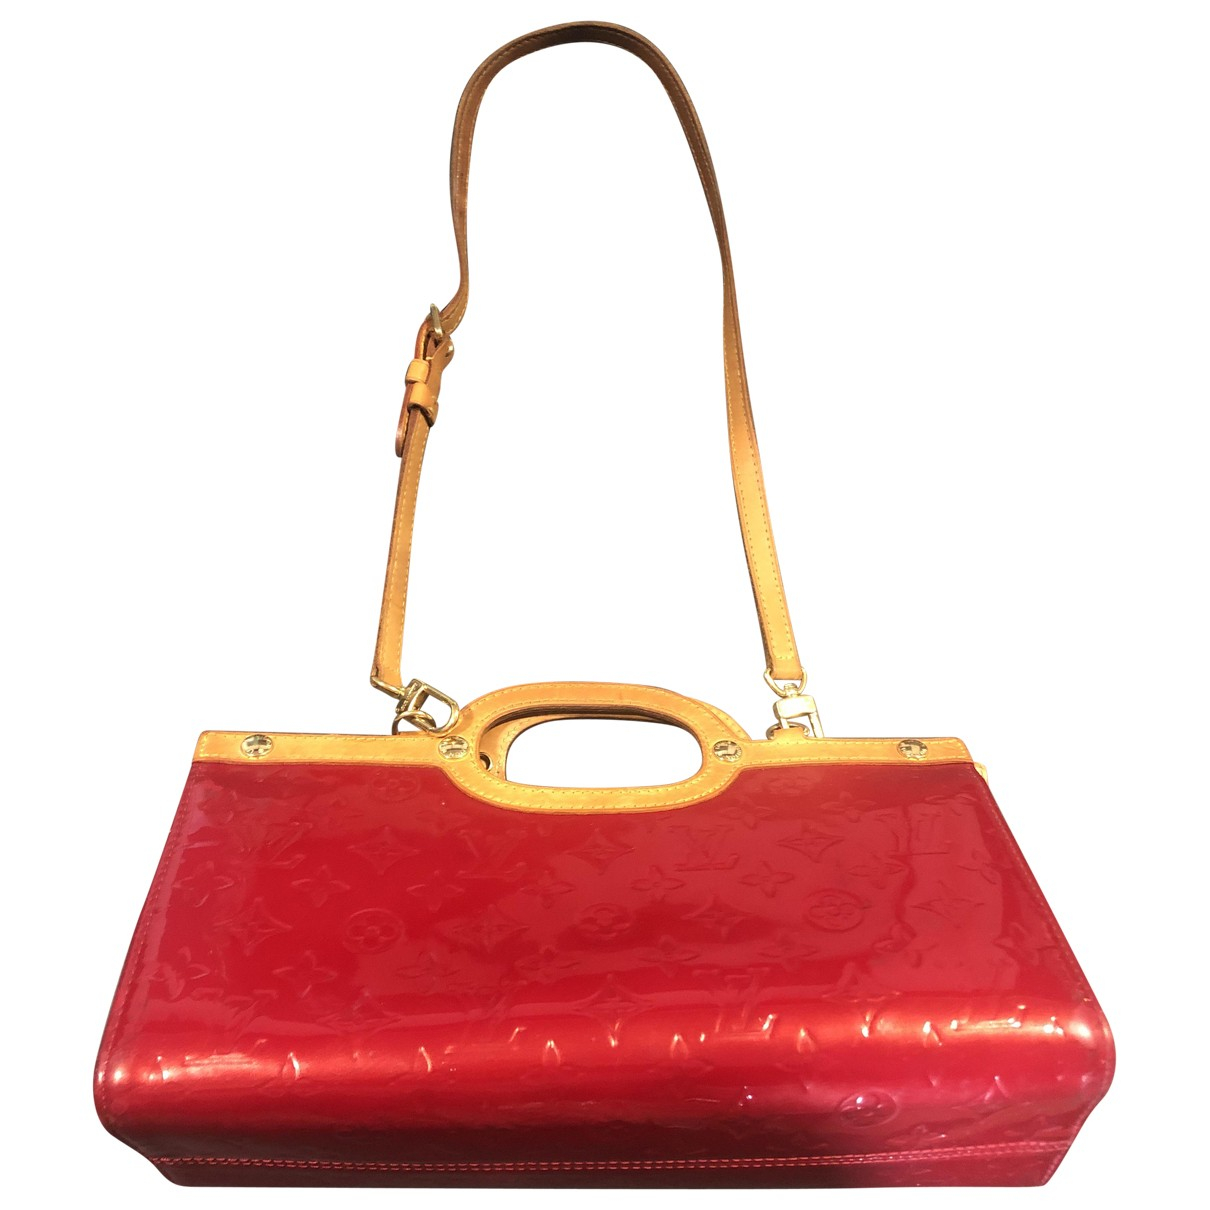 Louis Vuitton Roxbury Red Patent leather handbag for Women N